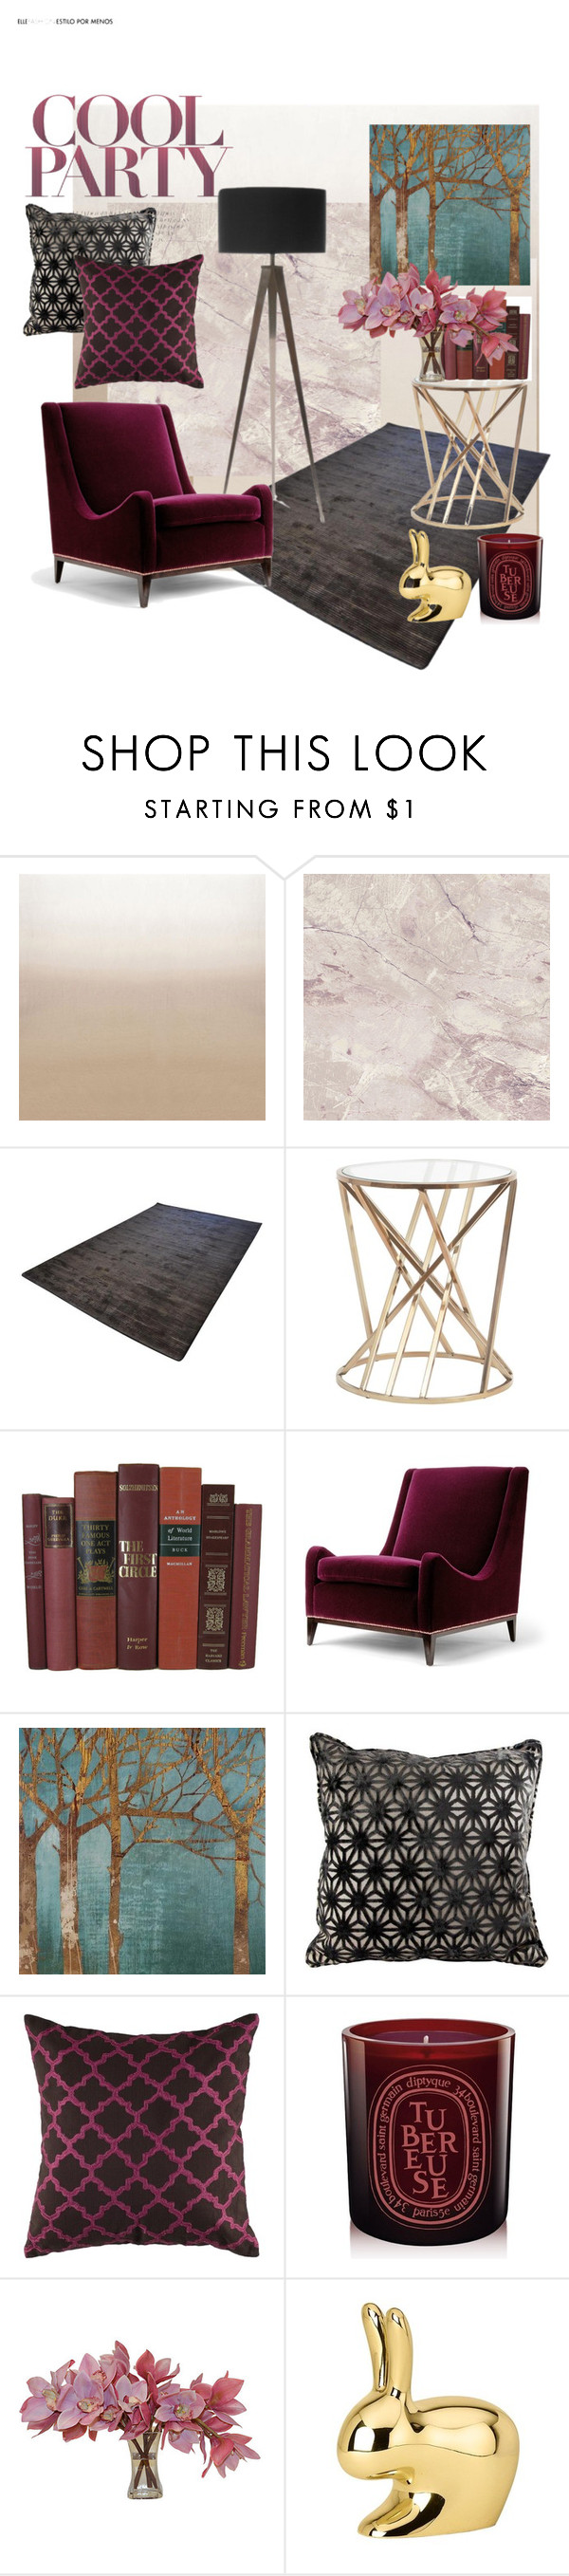 Home decor collage from january 2017 featuring currey company -  N167 By Marin K Liked On Polyvore Featuring Interior Interiors